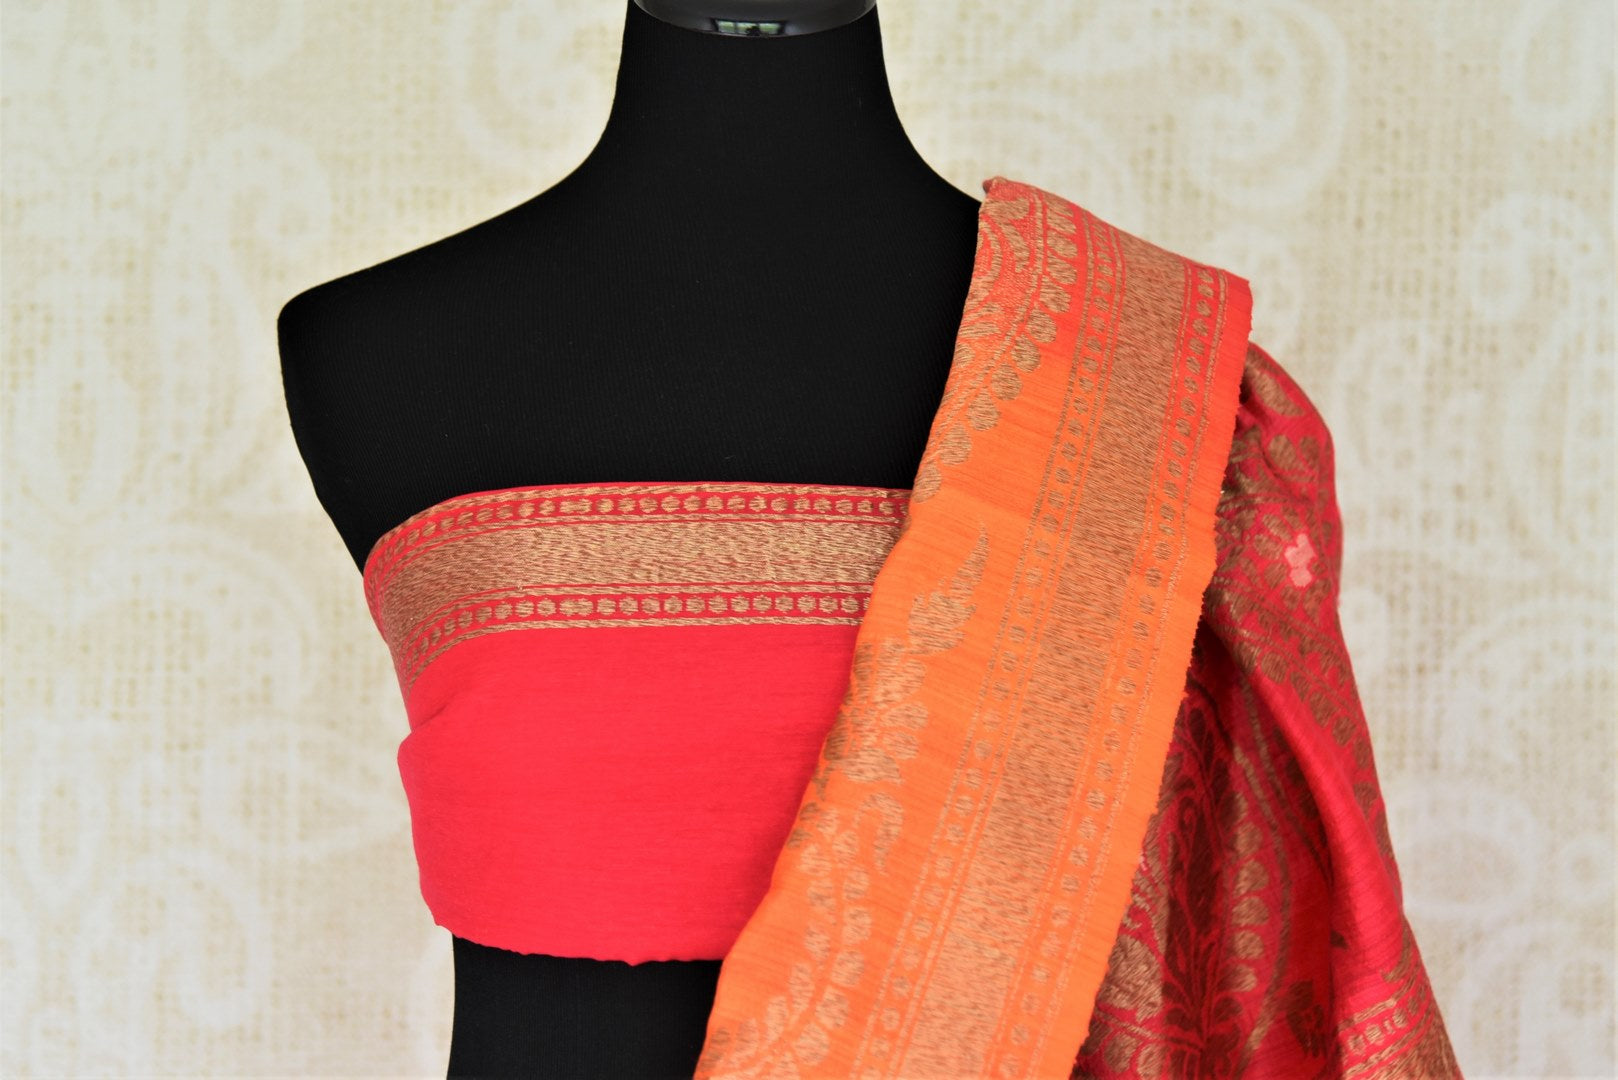 Buy pink and orange double shade matka Banarasi saree online in USA. Give your look an elegant touch with beautiful Indian designer sarees available at Pure Elegance Indian clothing store in USA or shop online.-blouse pallu